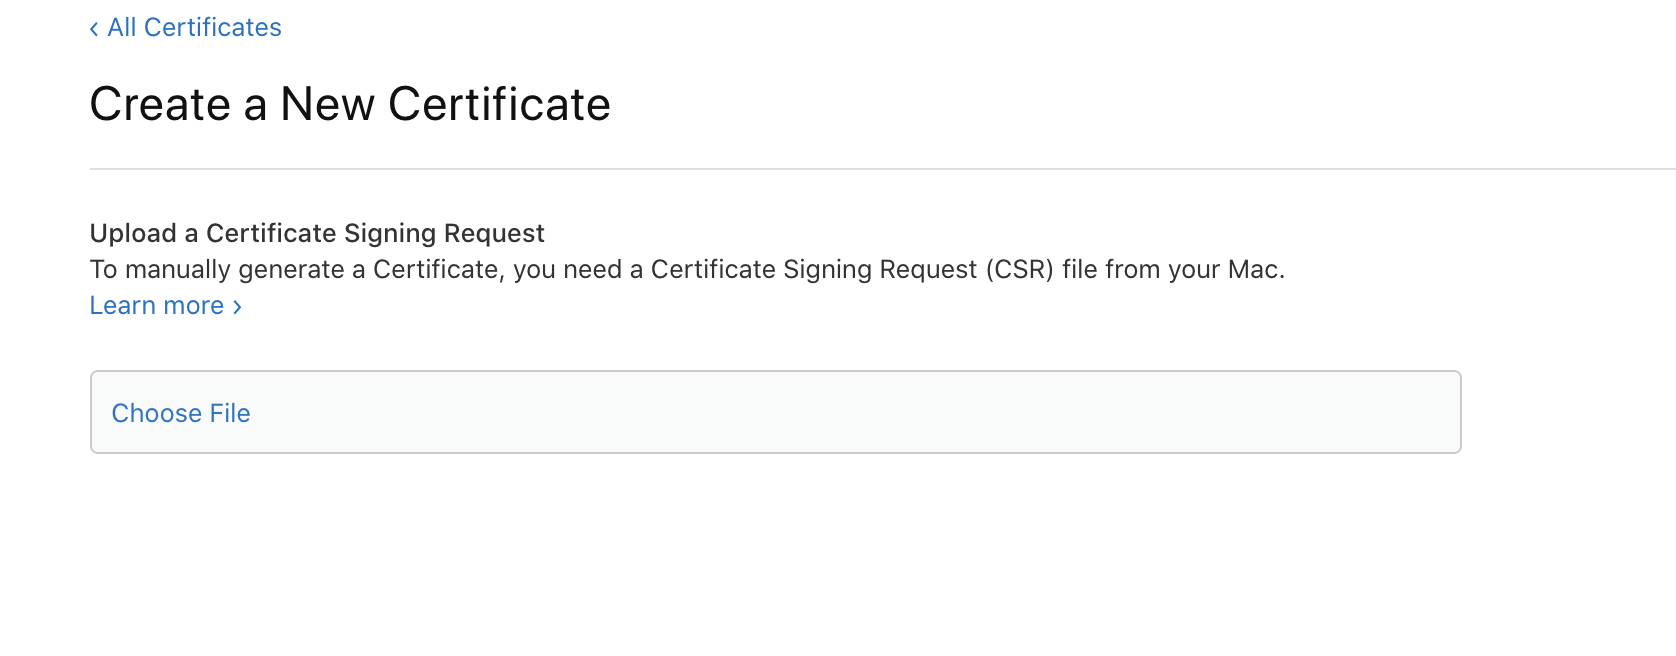 Select Certificate Signing Request